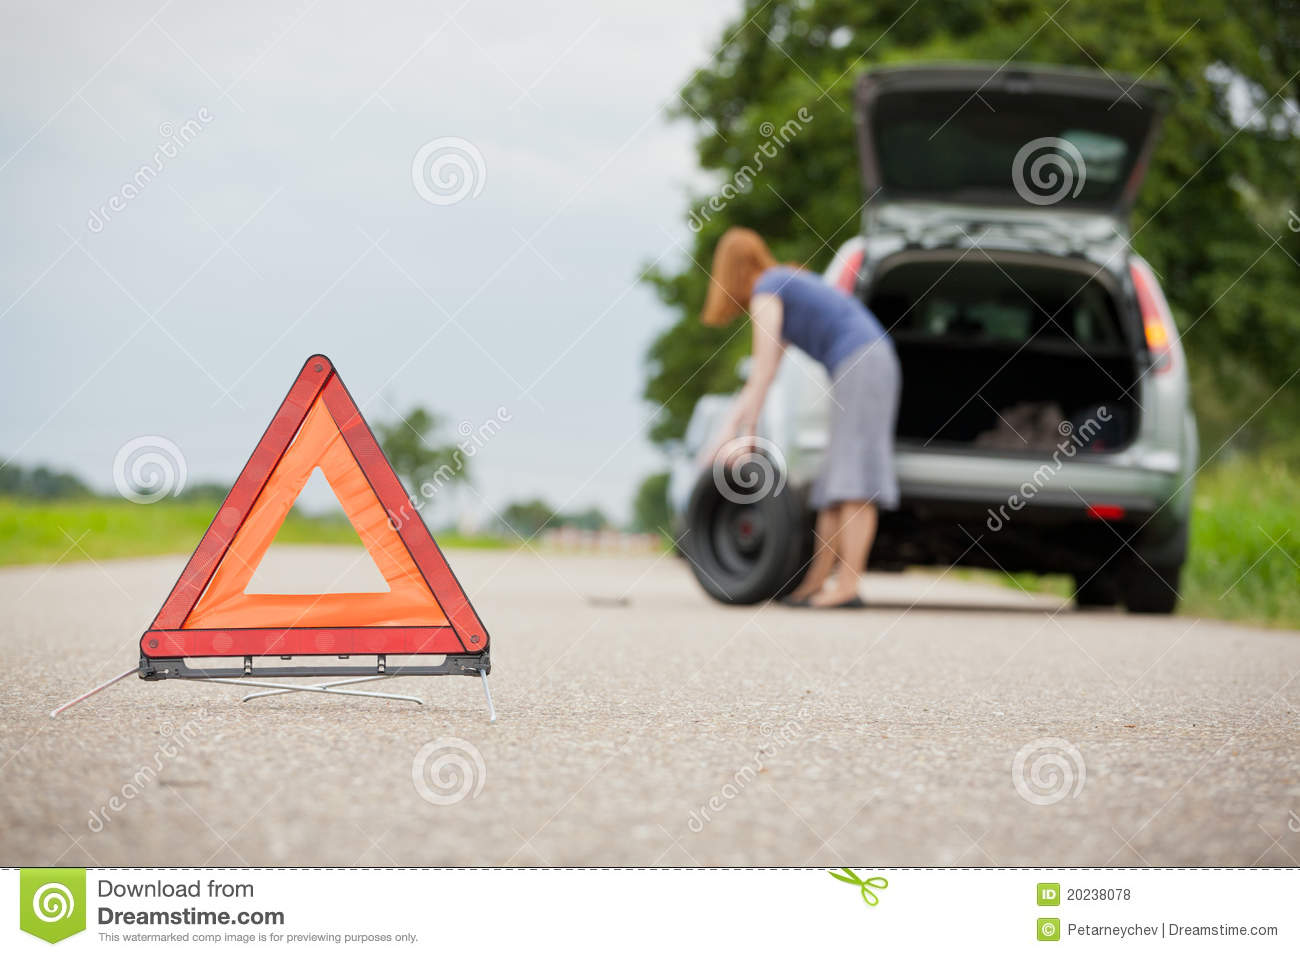 Flat tire on a car stock photo. Image of female, problems ...